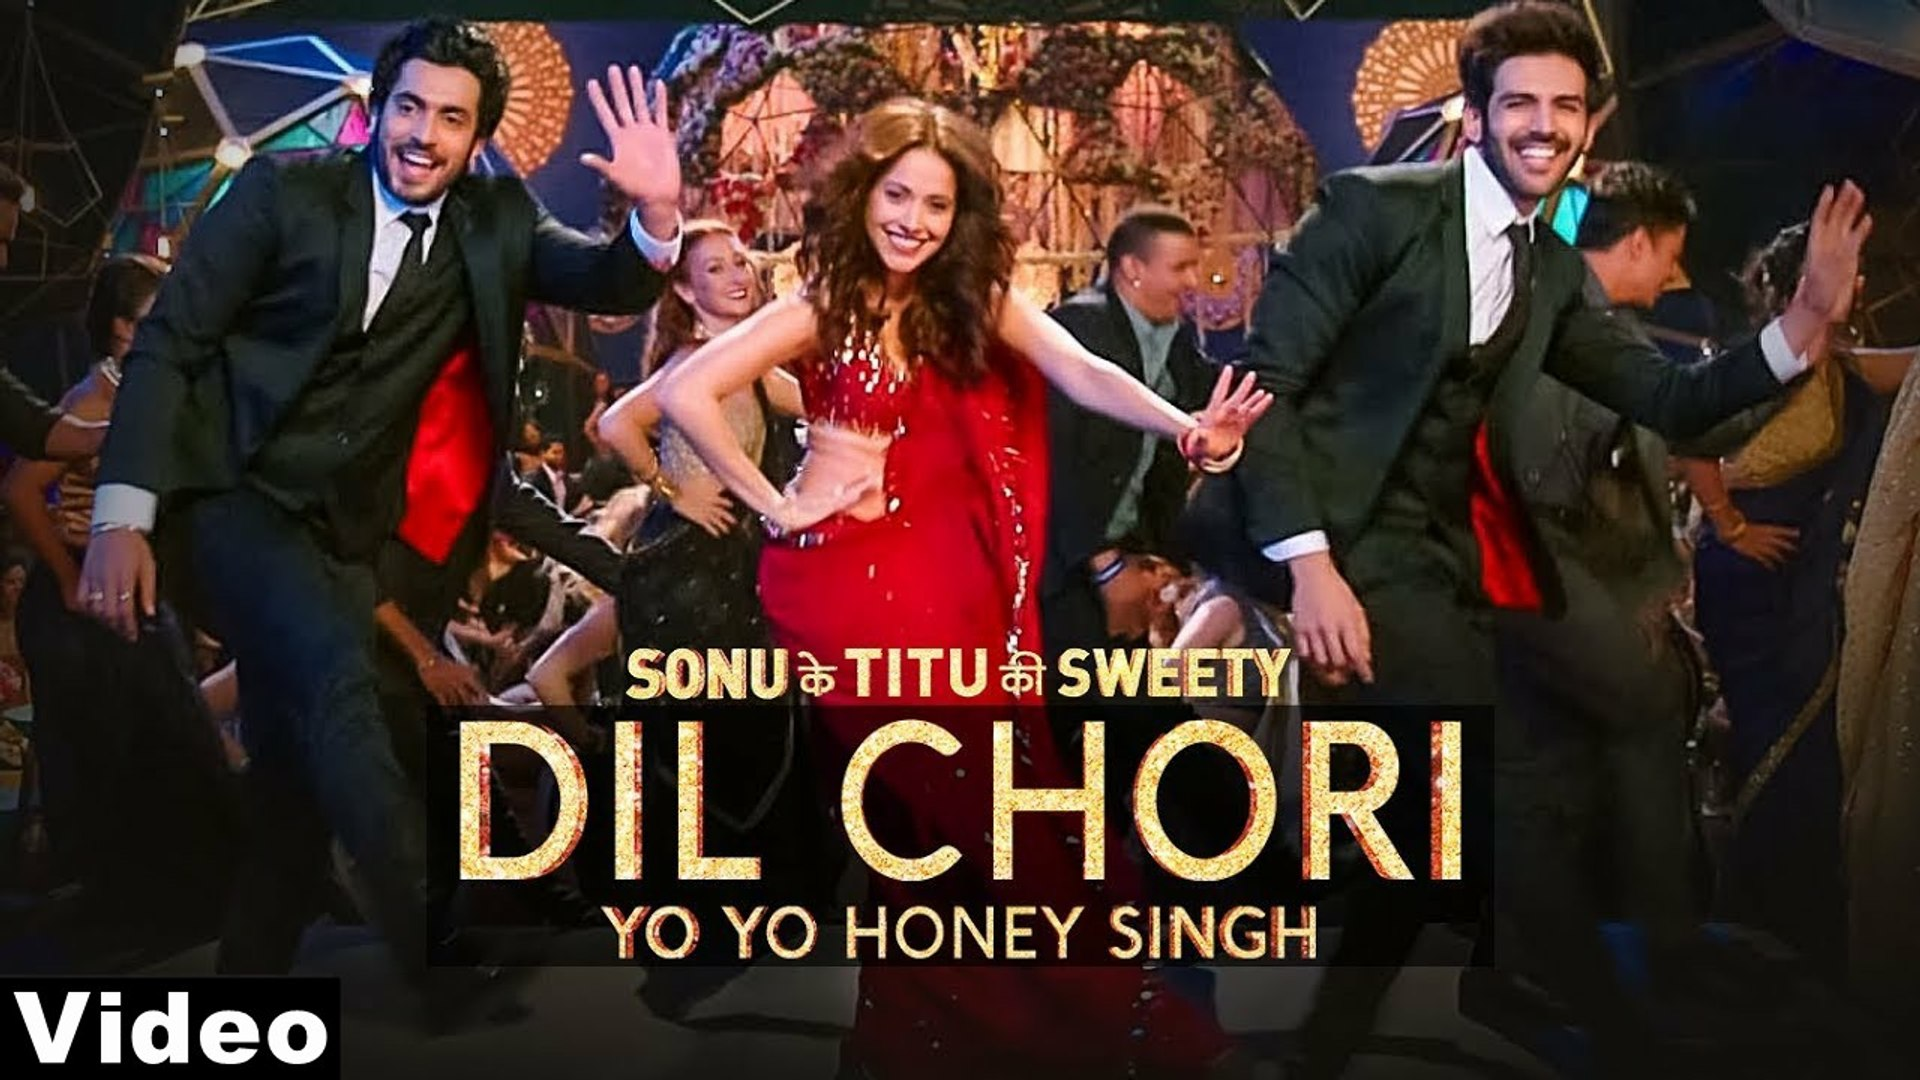 New Songs - DIL CHORI - HD(Full Video) - Yo Yo Honey Singh - Simar Kaur, Ishers - Hans Raj Hans - So